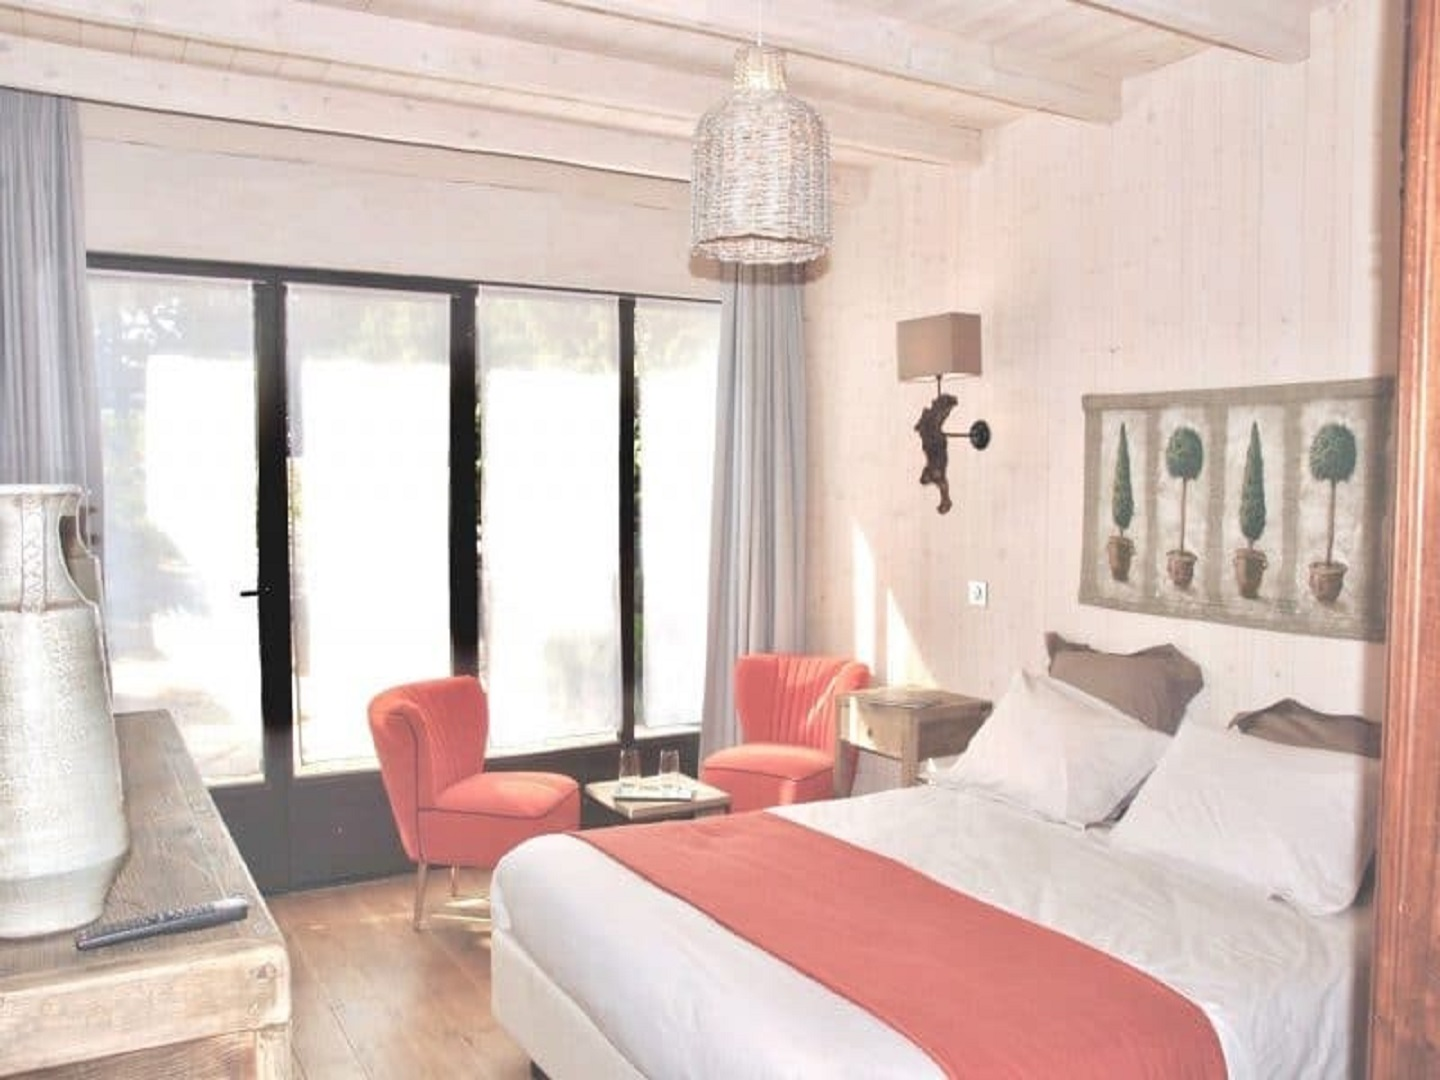 A bedroom with a large window at La Bastide aux Bois.